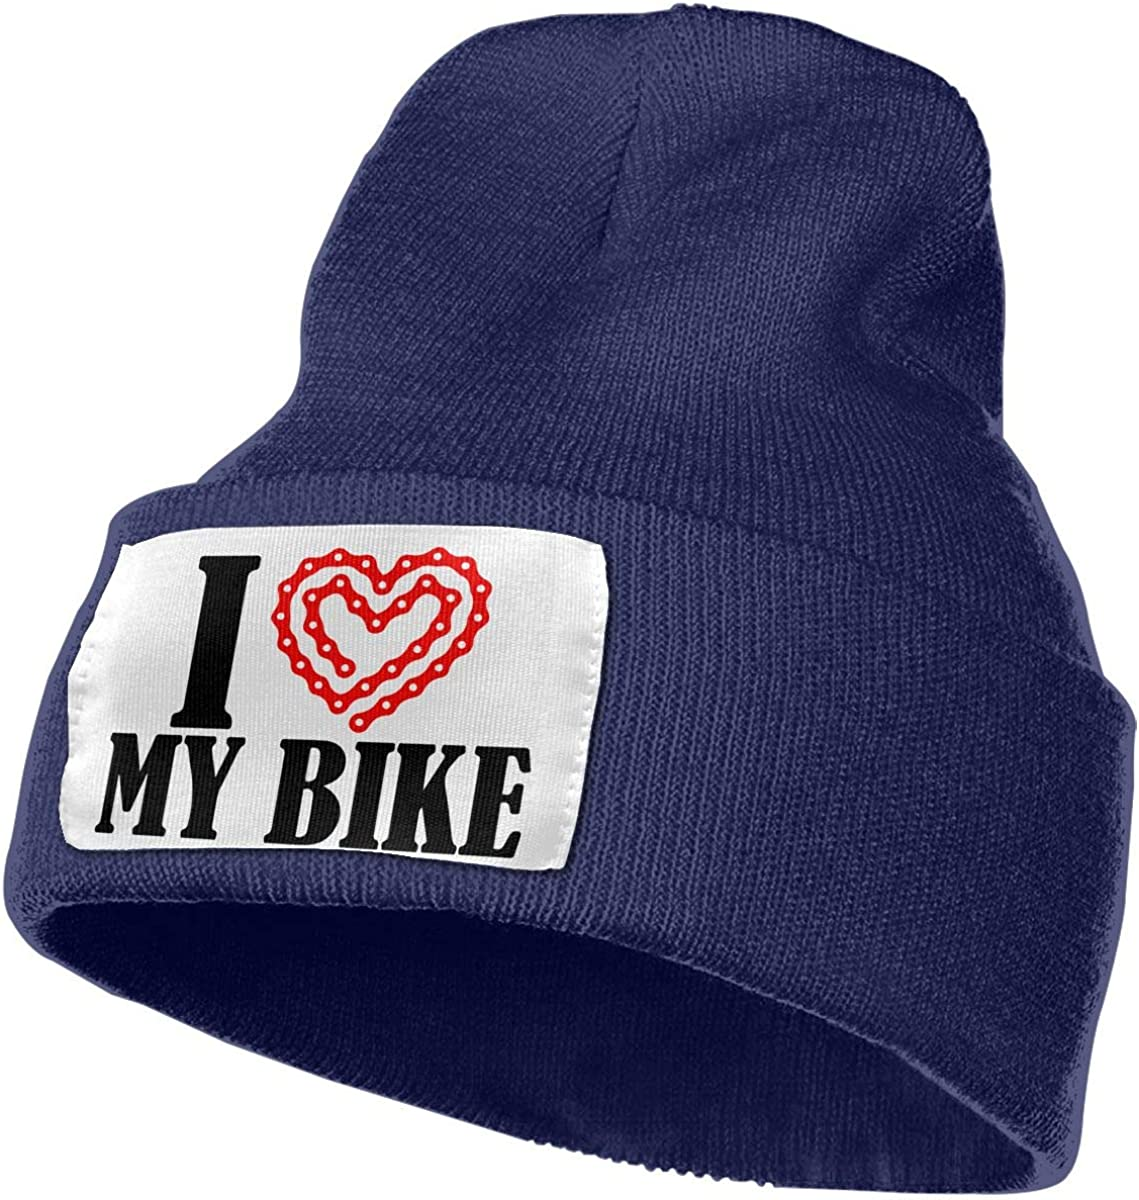 I Love My Bike 1 Women and Men Skull Caps Winter Warm Stretchy Knit Beanie Hats